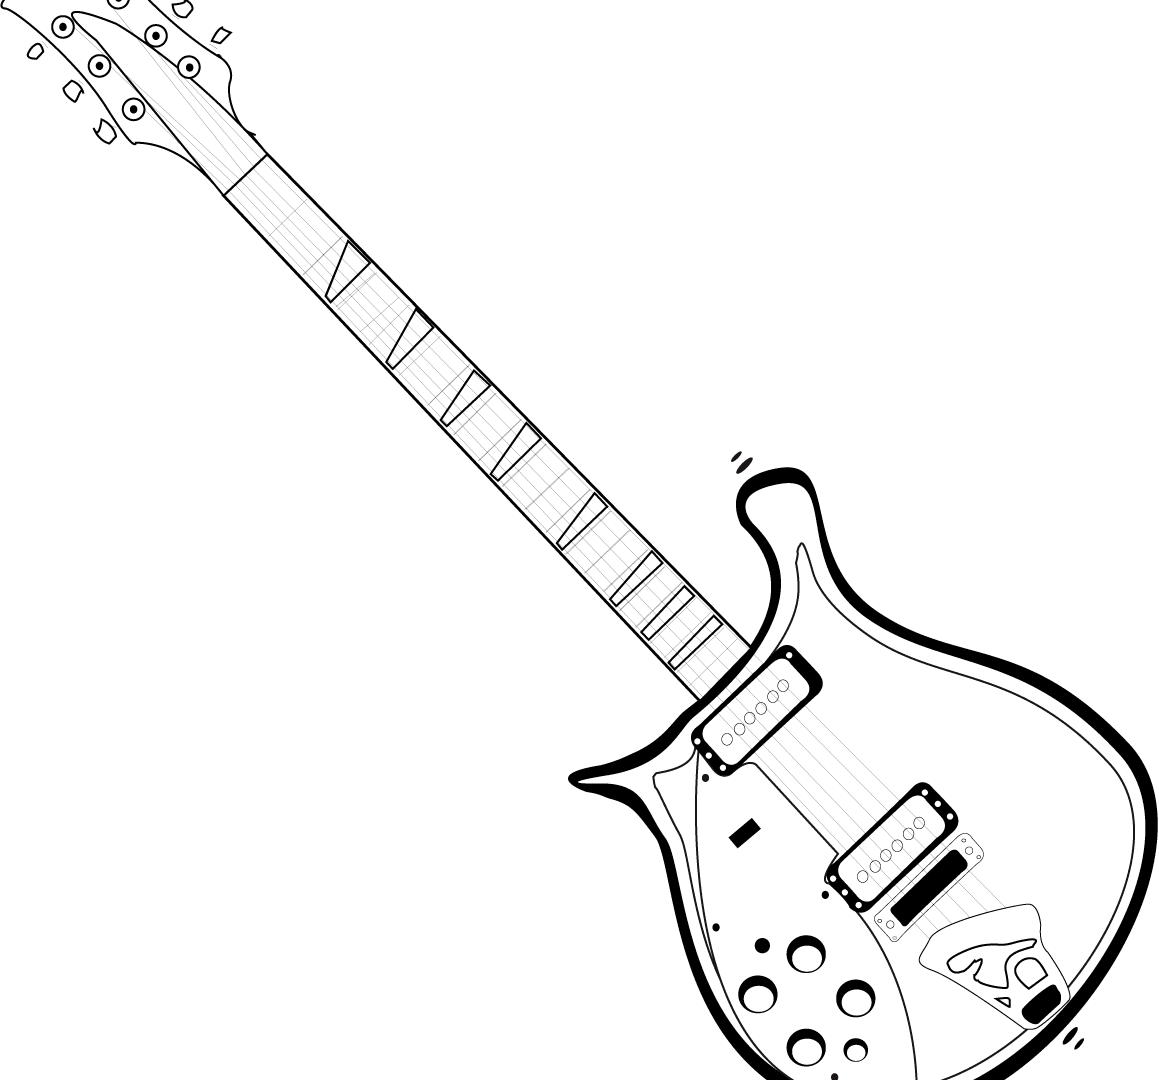 electric guitar outline drawing at getdrawings com